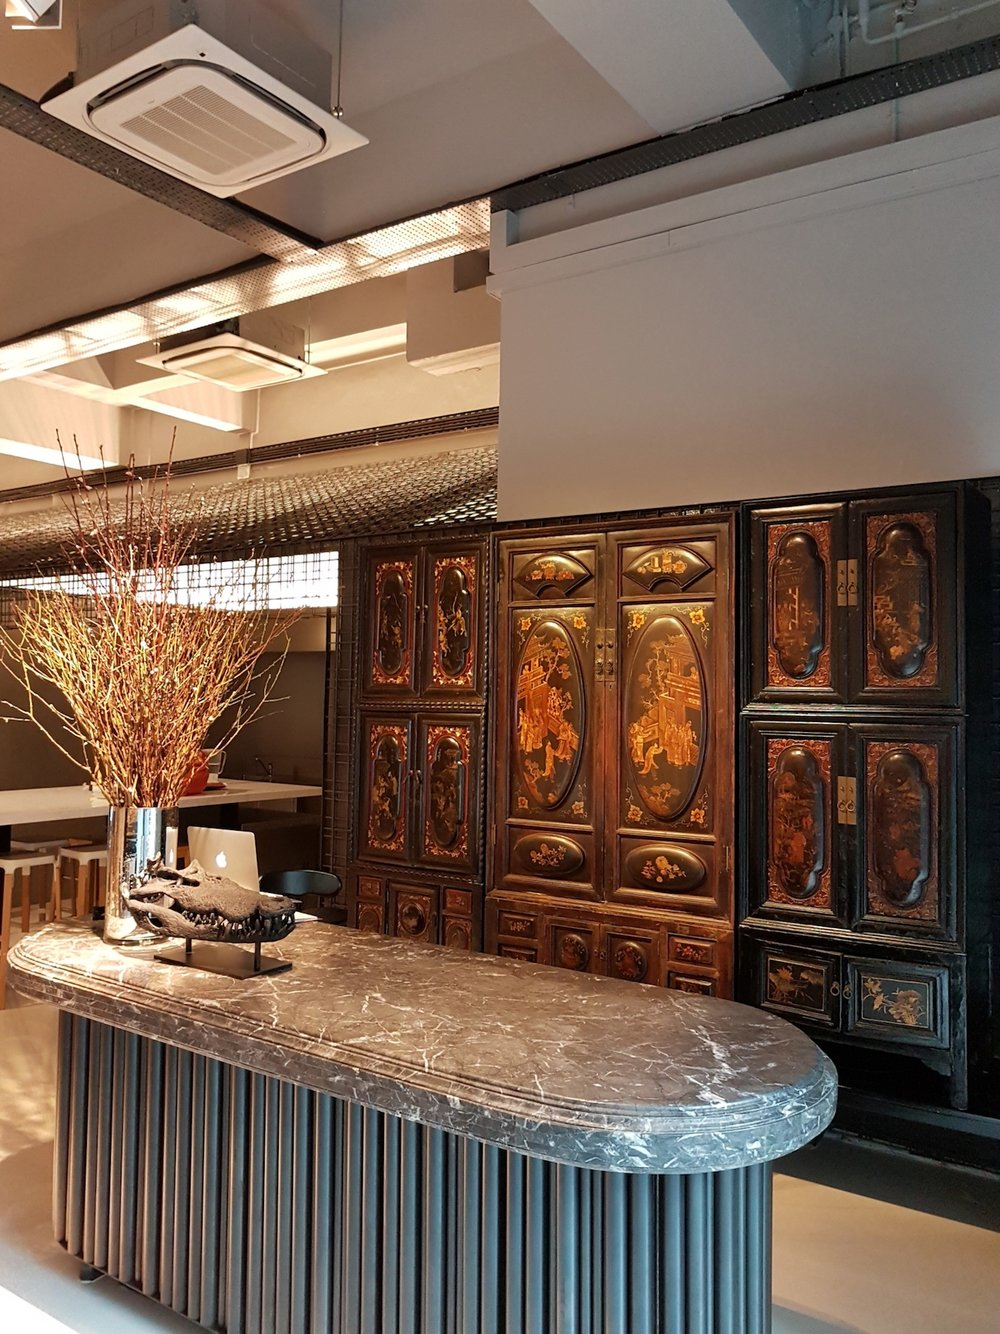 Antique lacquered cabinets from Chaozhou. Corporate office, styling and photo courtesy of eco-id architects Singapore.